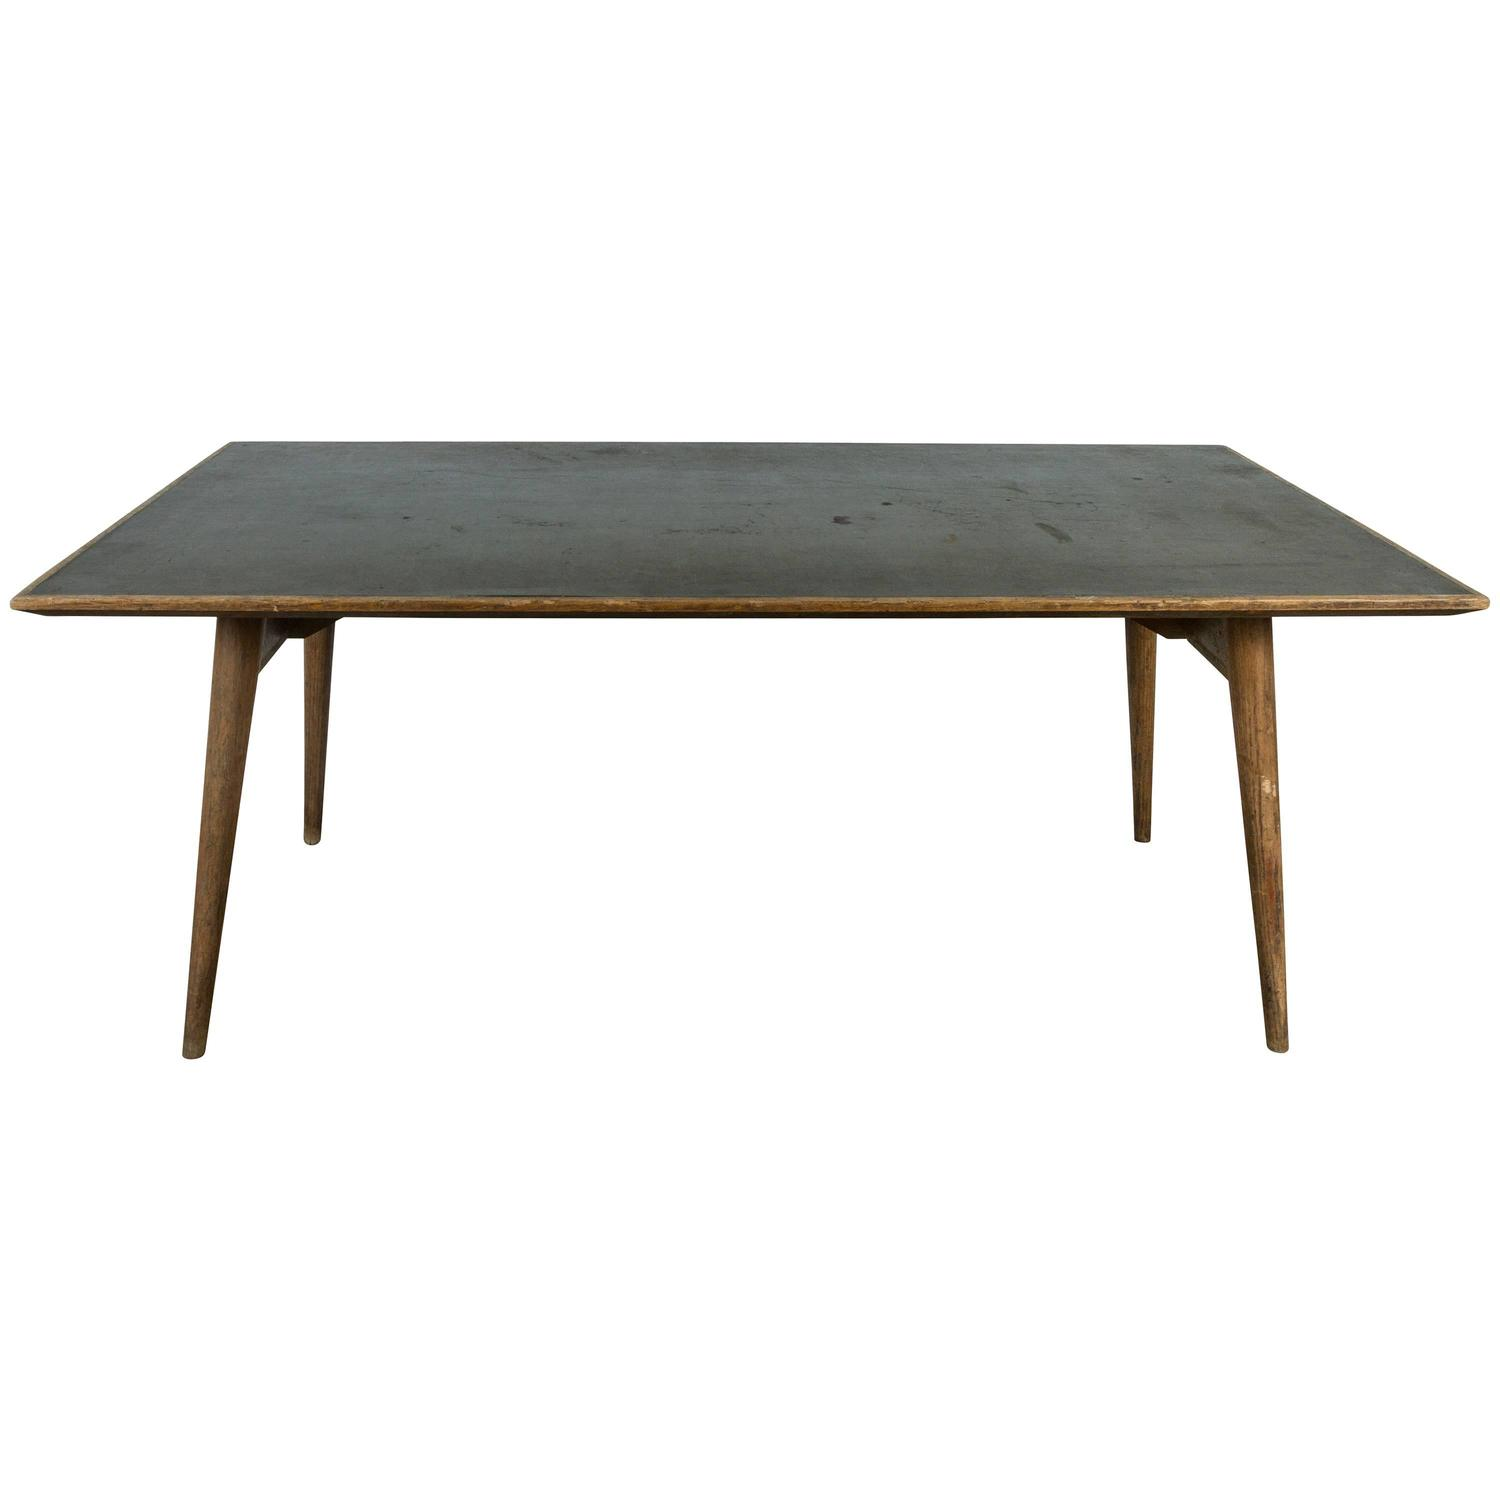 Laminate Dining Tables Modernist Wood And Laminate Dining Table For Sale At 1stdibs Eames